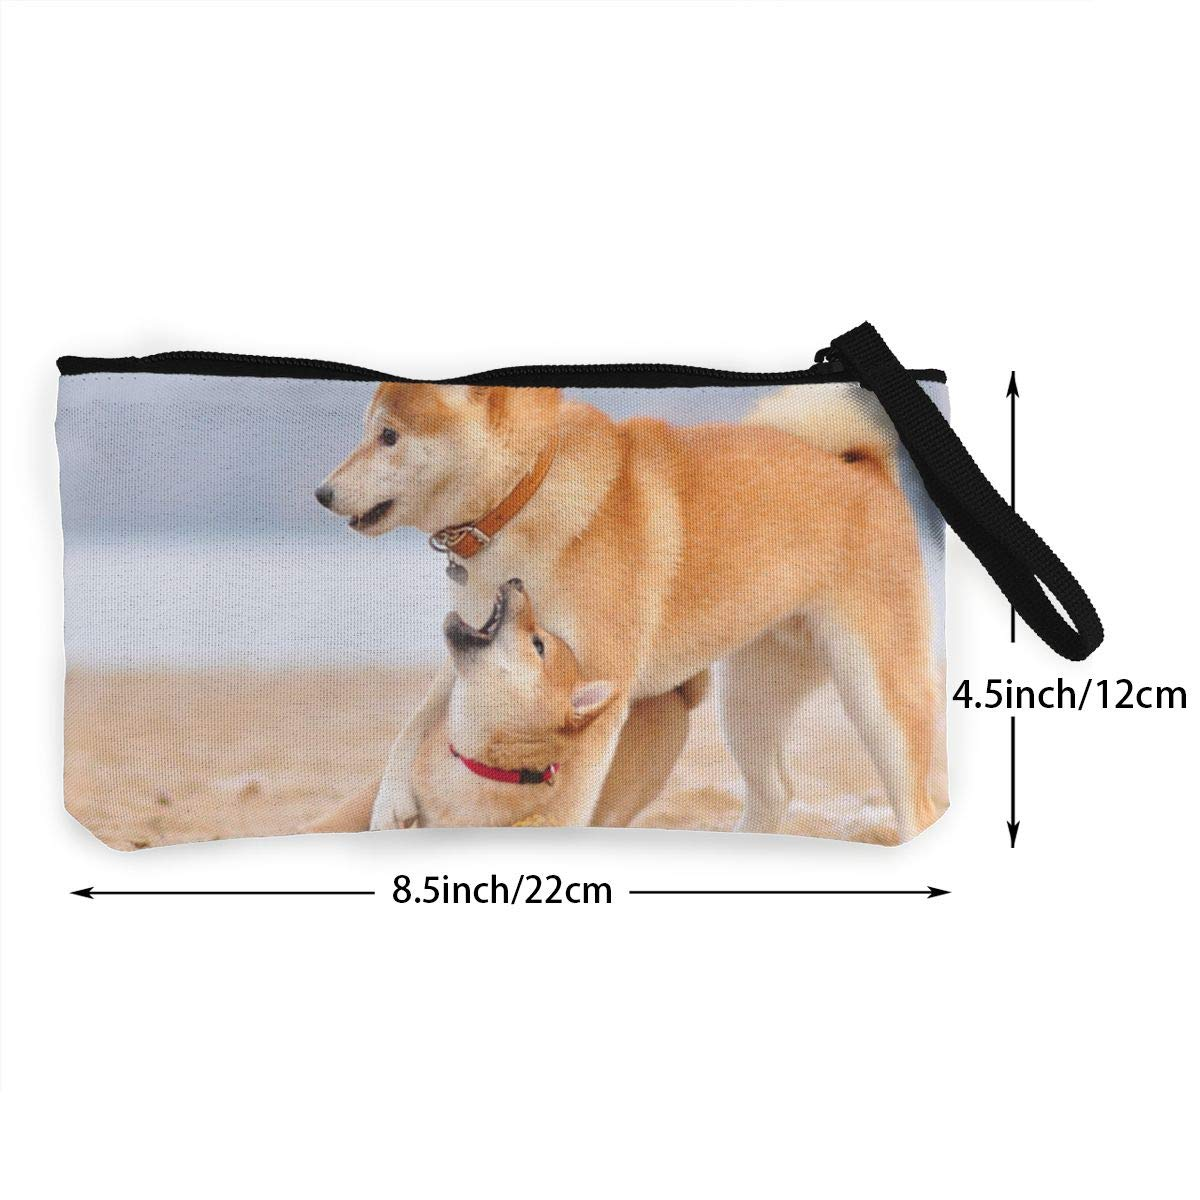 Maple Memories Shiba Inu Dog Portable Canvas Coin Purse Change Purse Pouch Mini Wallet Gifts For Women Girls